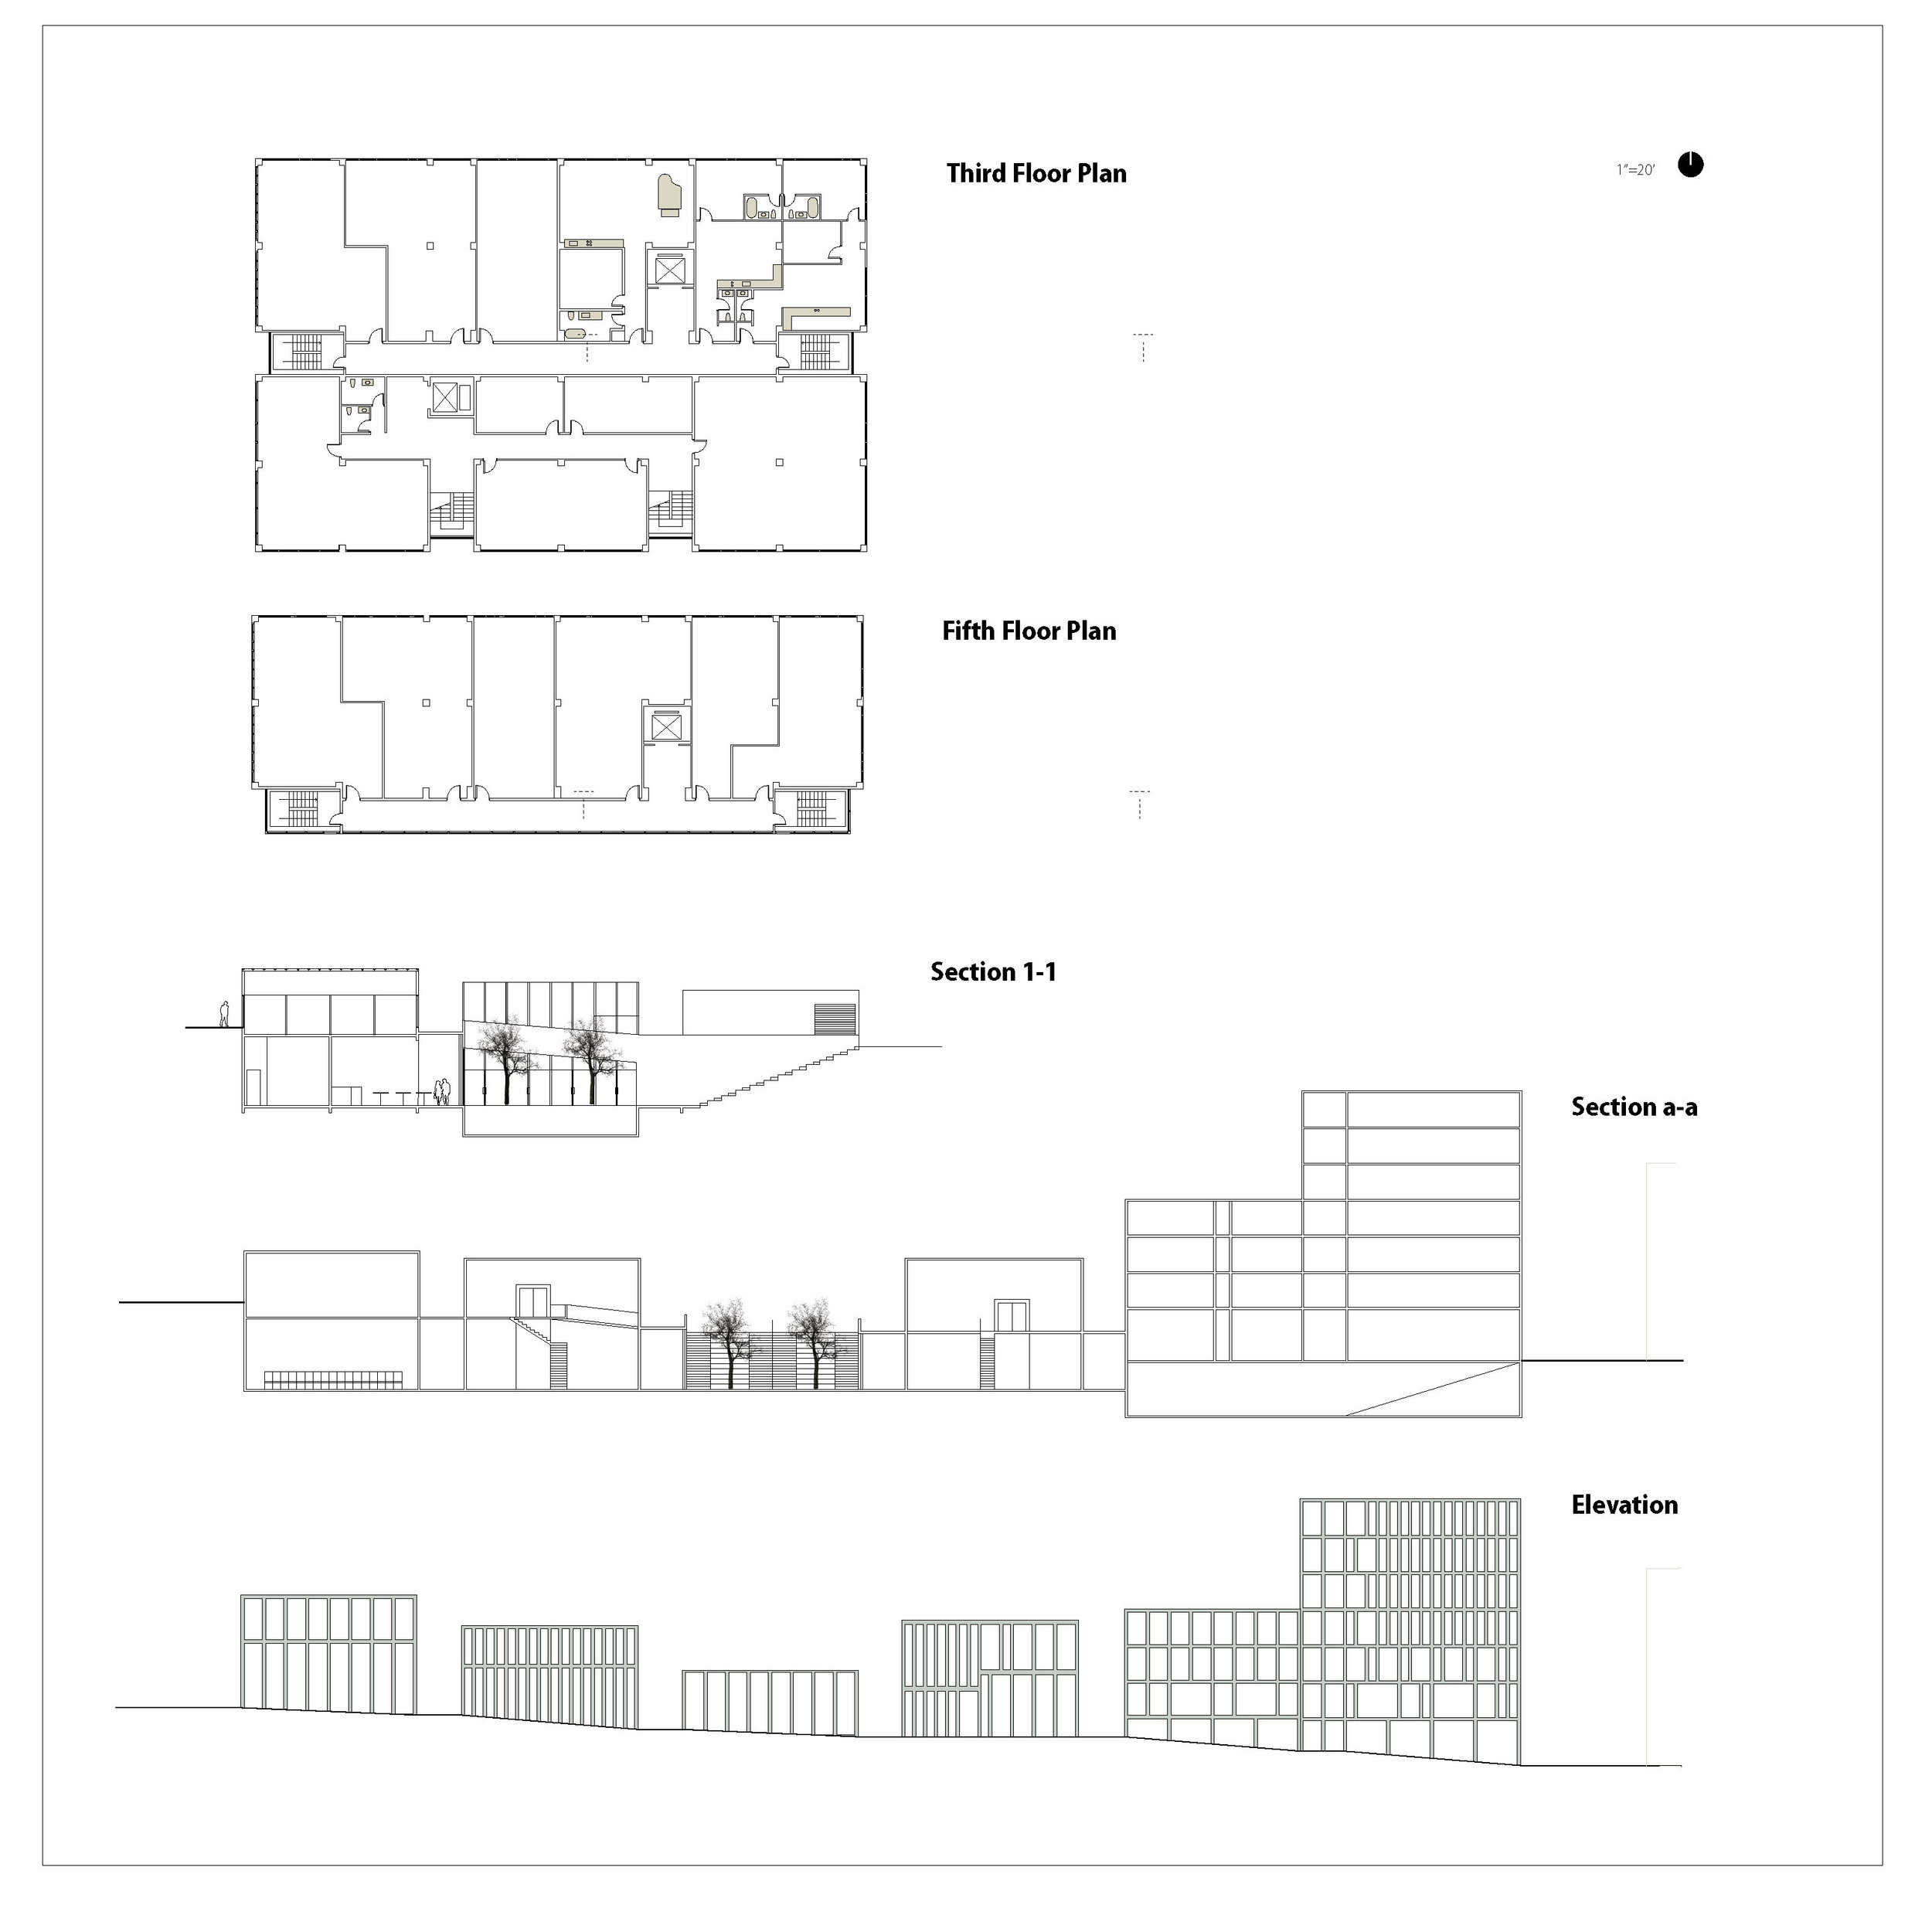 Density_Typical Floor Plan and Sections